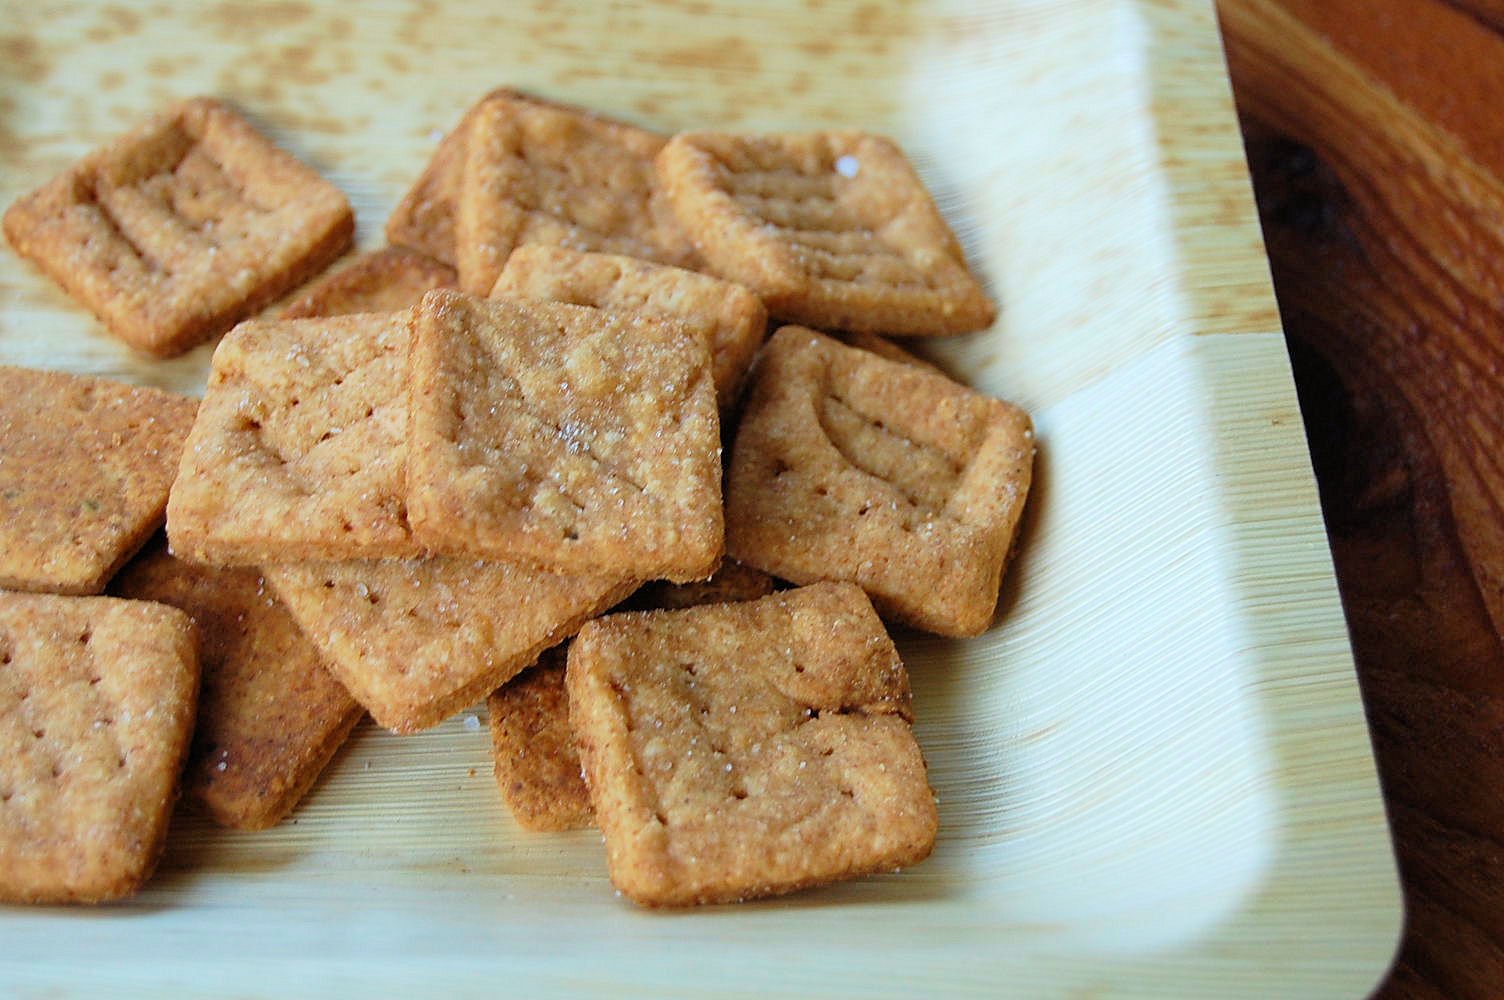 Whole Grain Cheese Crackers with Sea Salt